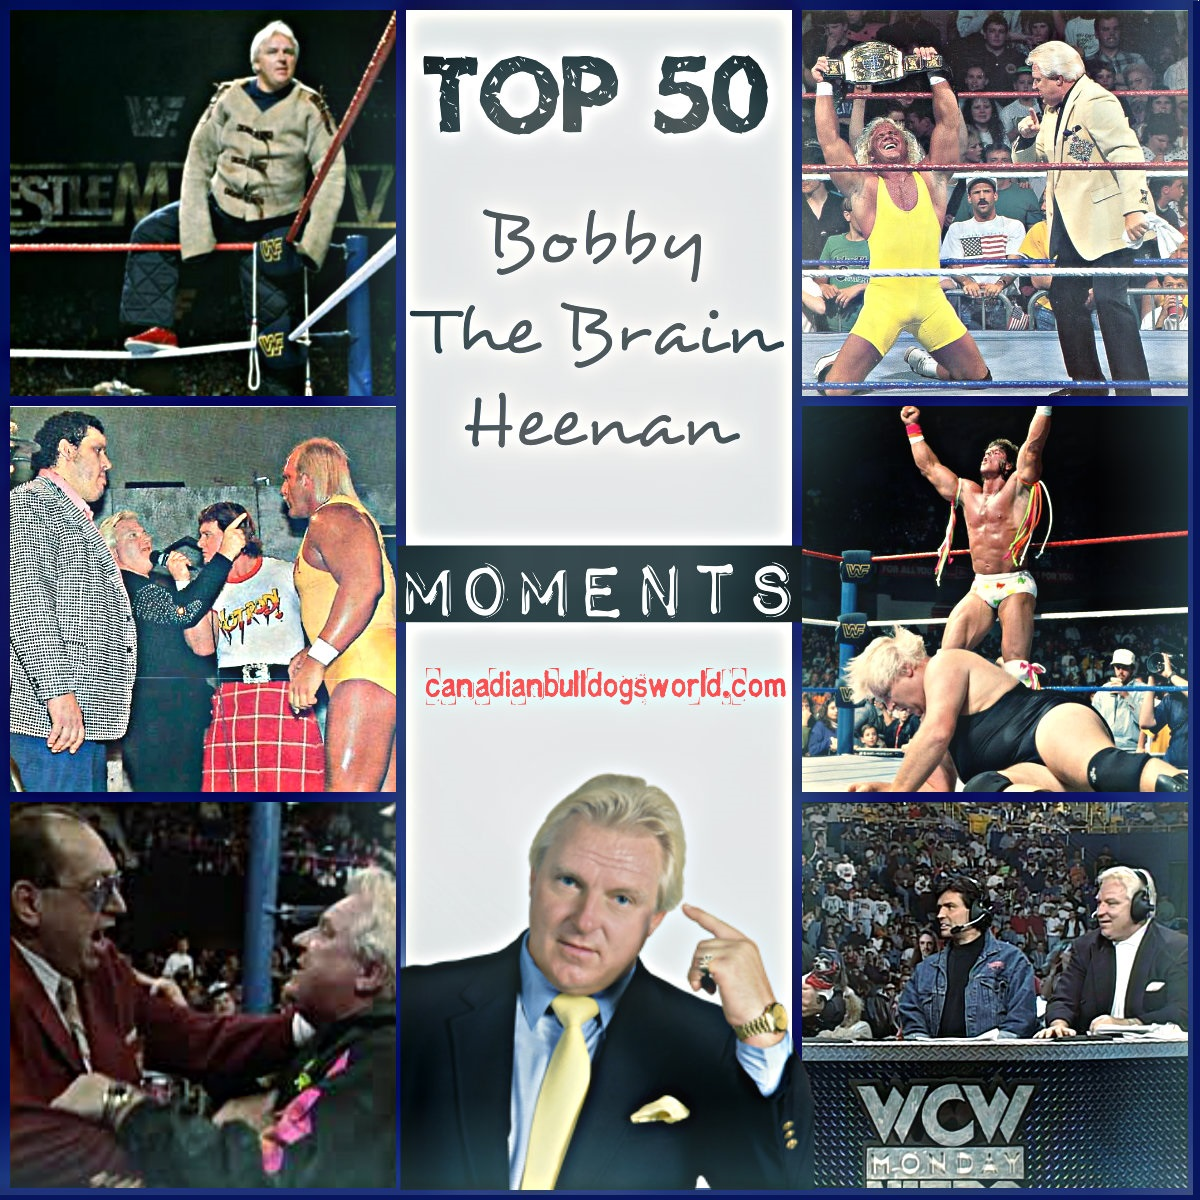 Top 50 Bobby The Brain Heenan Moments